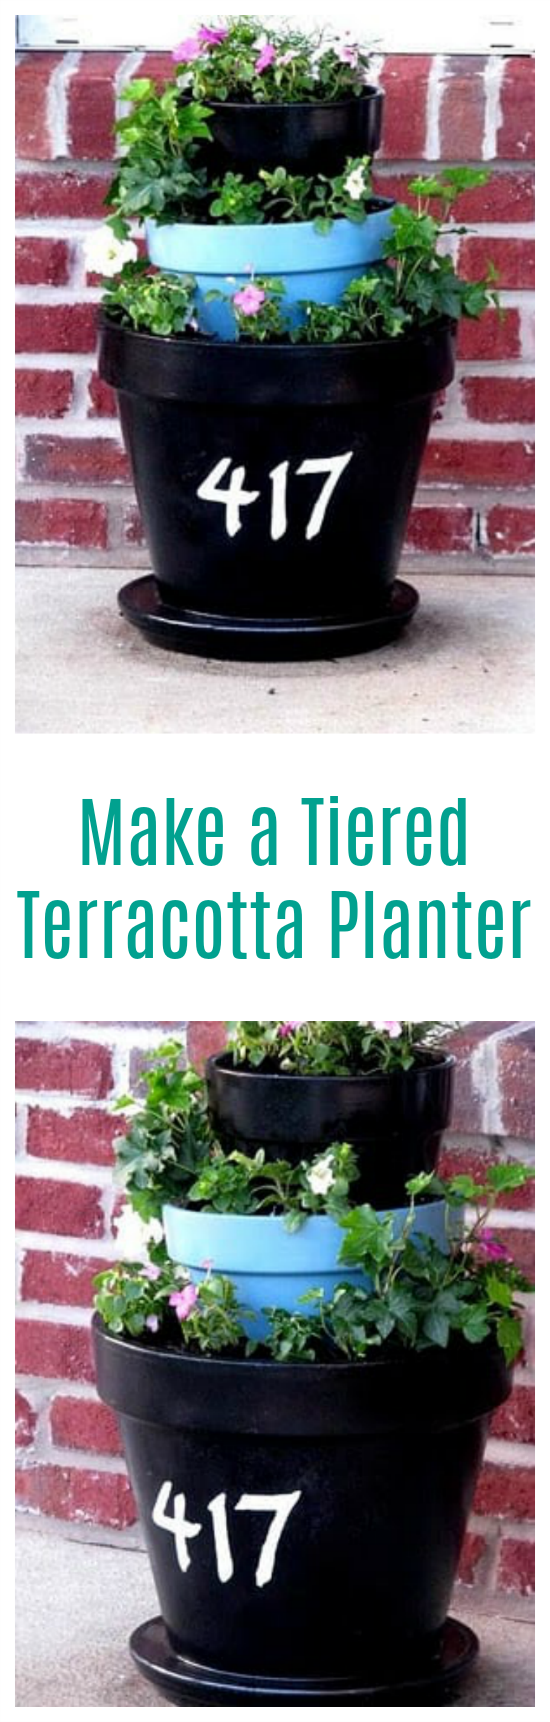 terracotta planter for spring